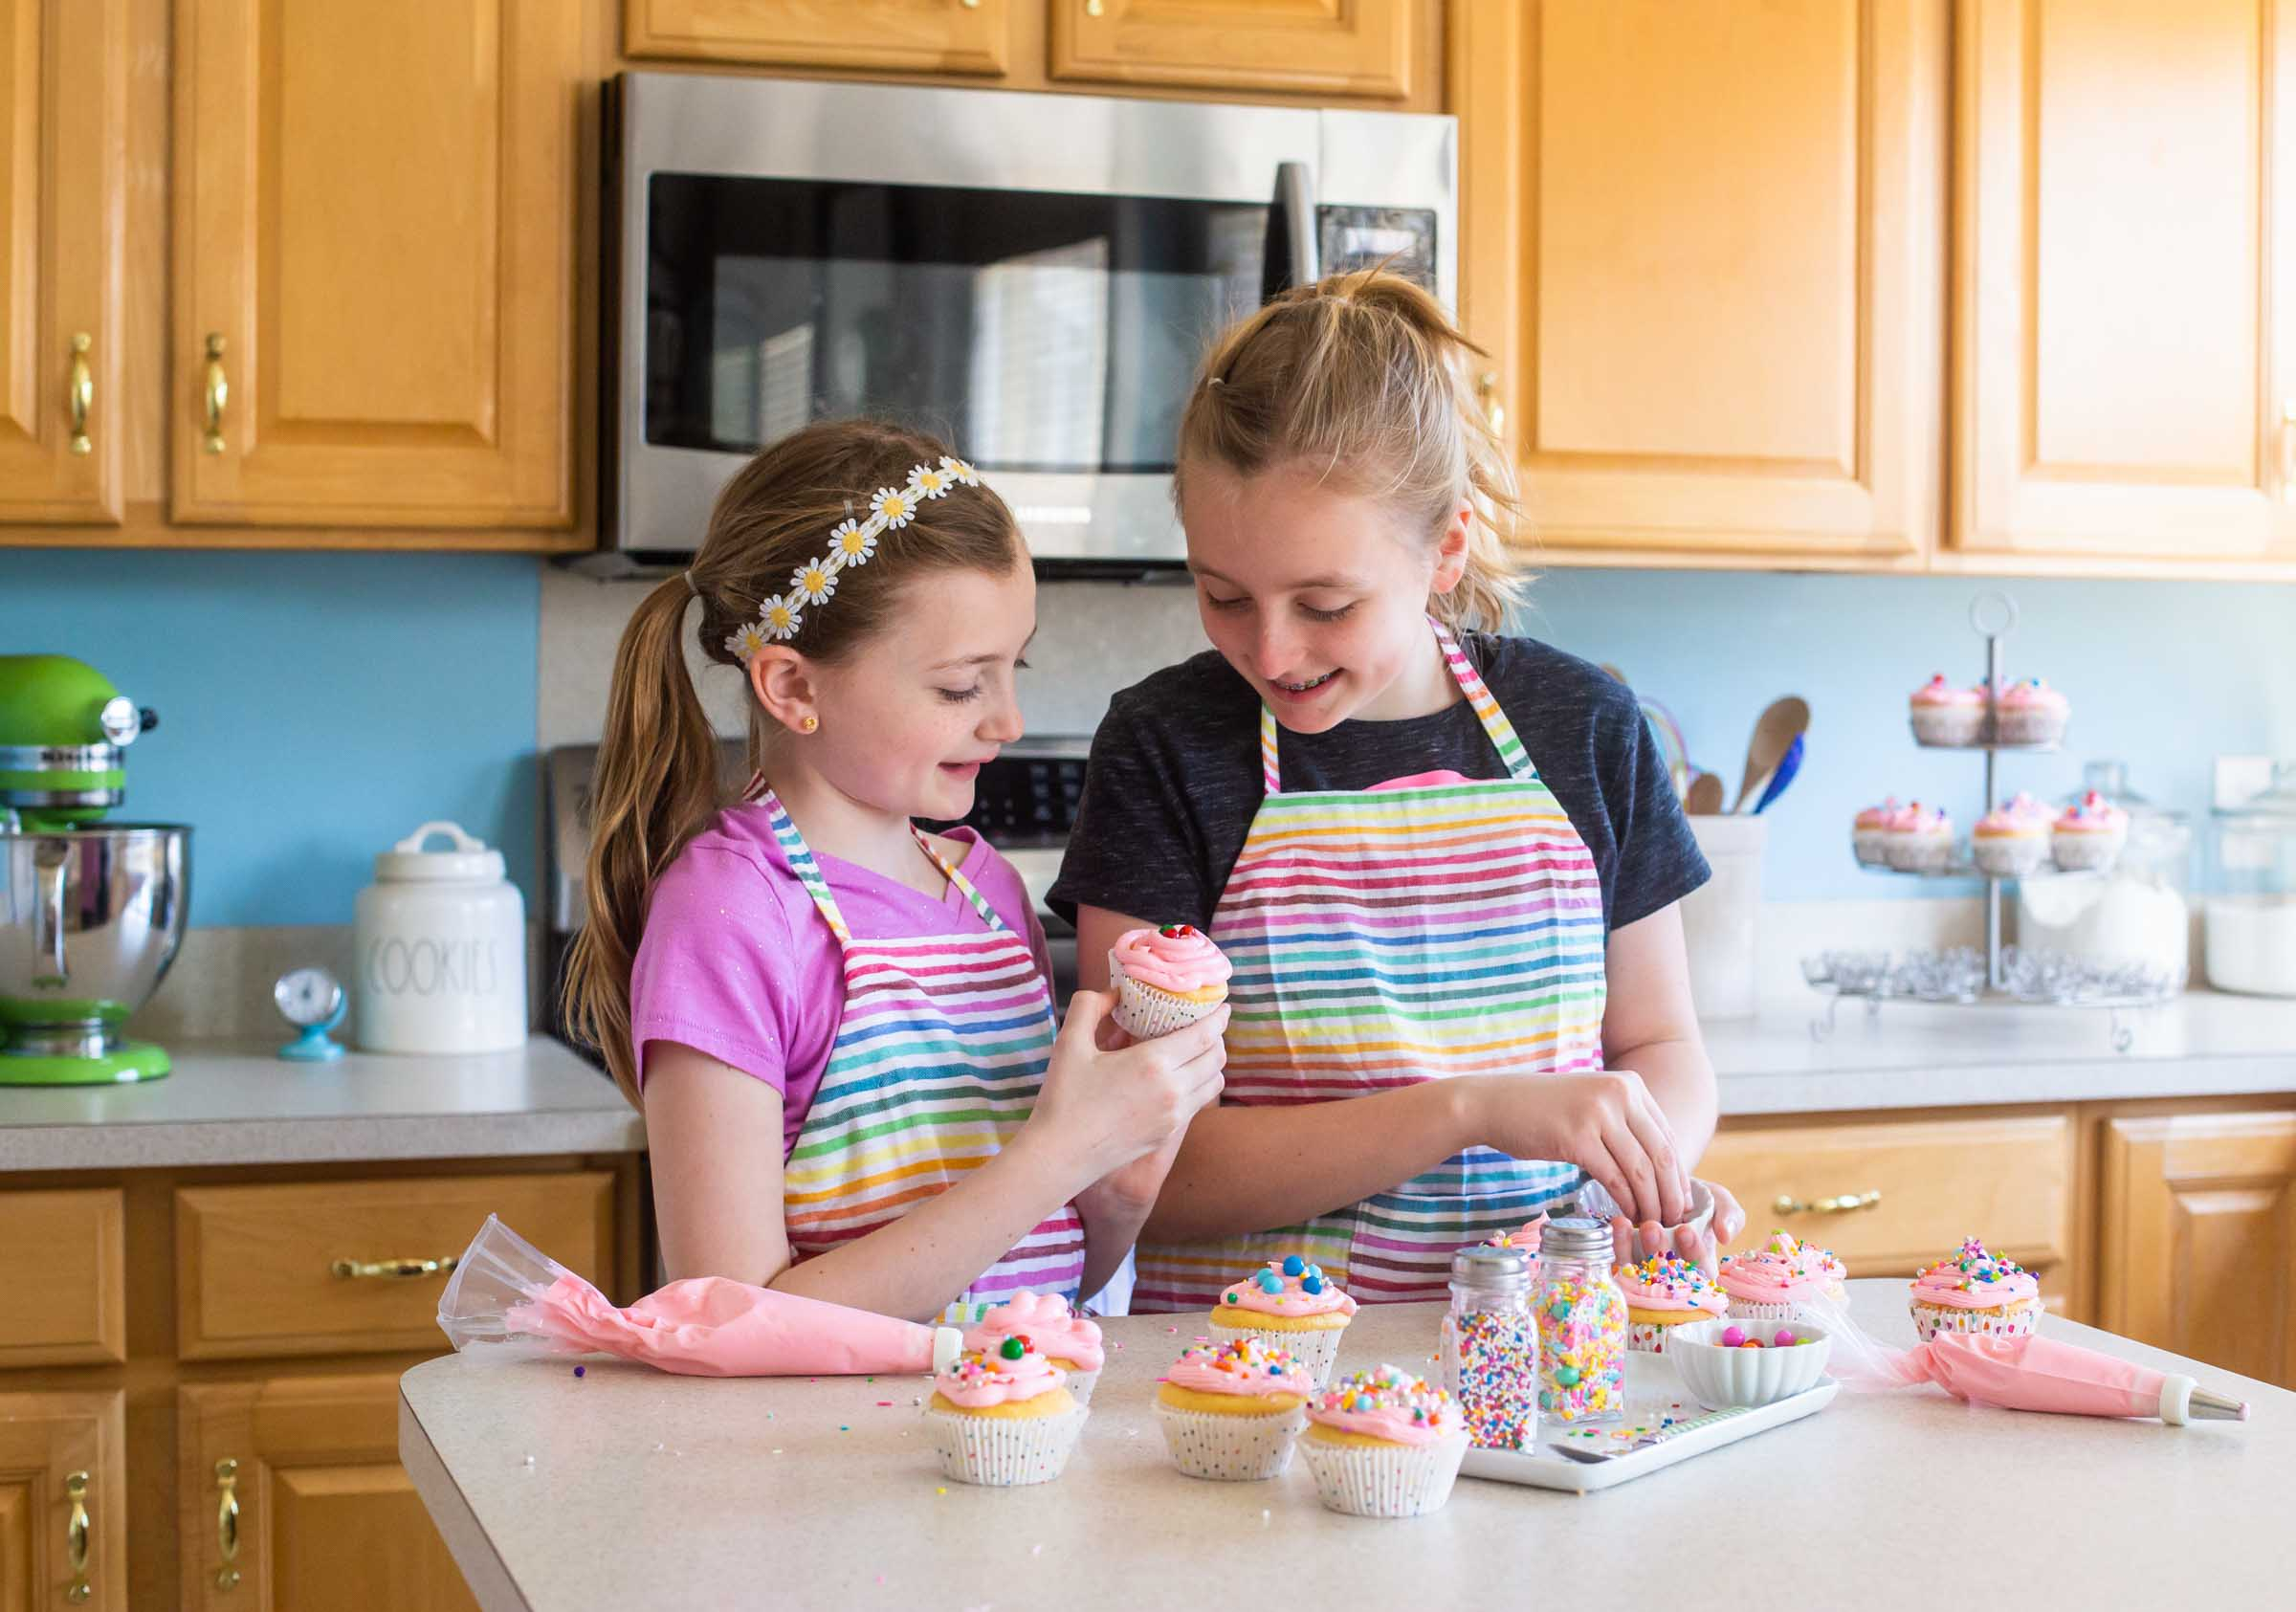 My two girls baking pink-frosted cupcakes in our kitchen as we test The Ultimate Kids' Baking Book recipes.